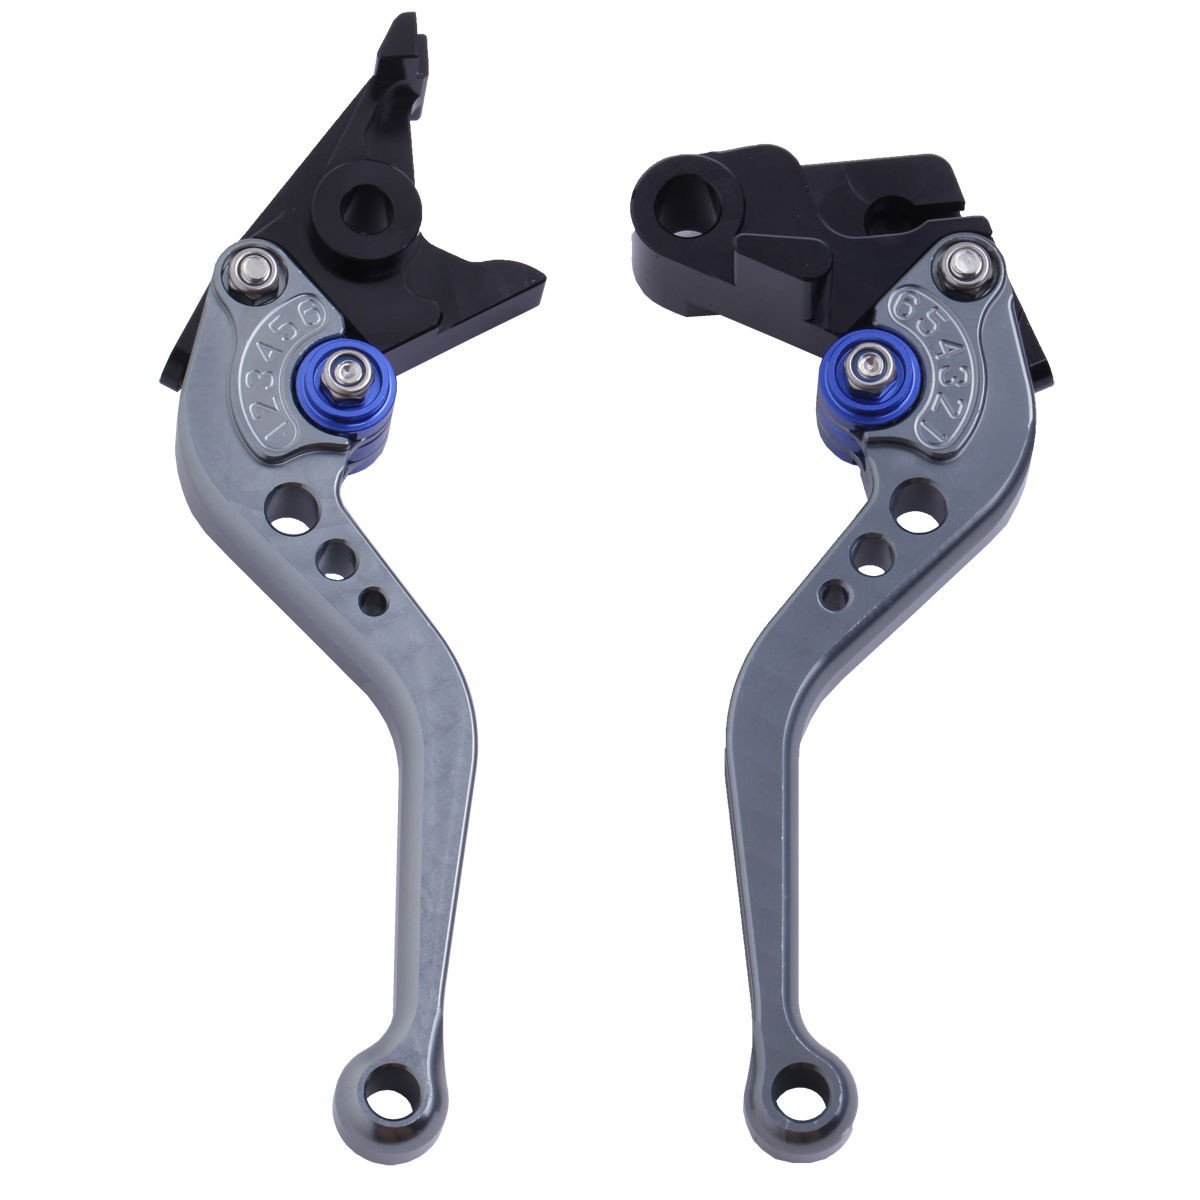 LUO CNC Short Brake Clutch Levers for Yamaha MT-07/FZ-07 2014-2017,FZ1 Fazer 2006-2013,FZ6 Fazer 2004-2010,FZ6R 09-11,Fazer 600 1999,FZ8 2011-2015,MT-09/SR/FZ9 2014-2017,XJ6 Diversion 09-15-Gray